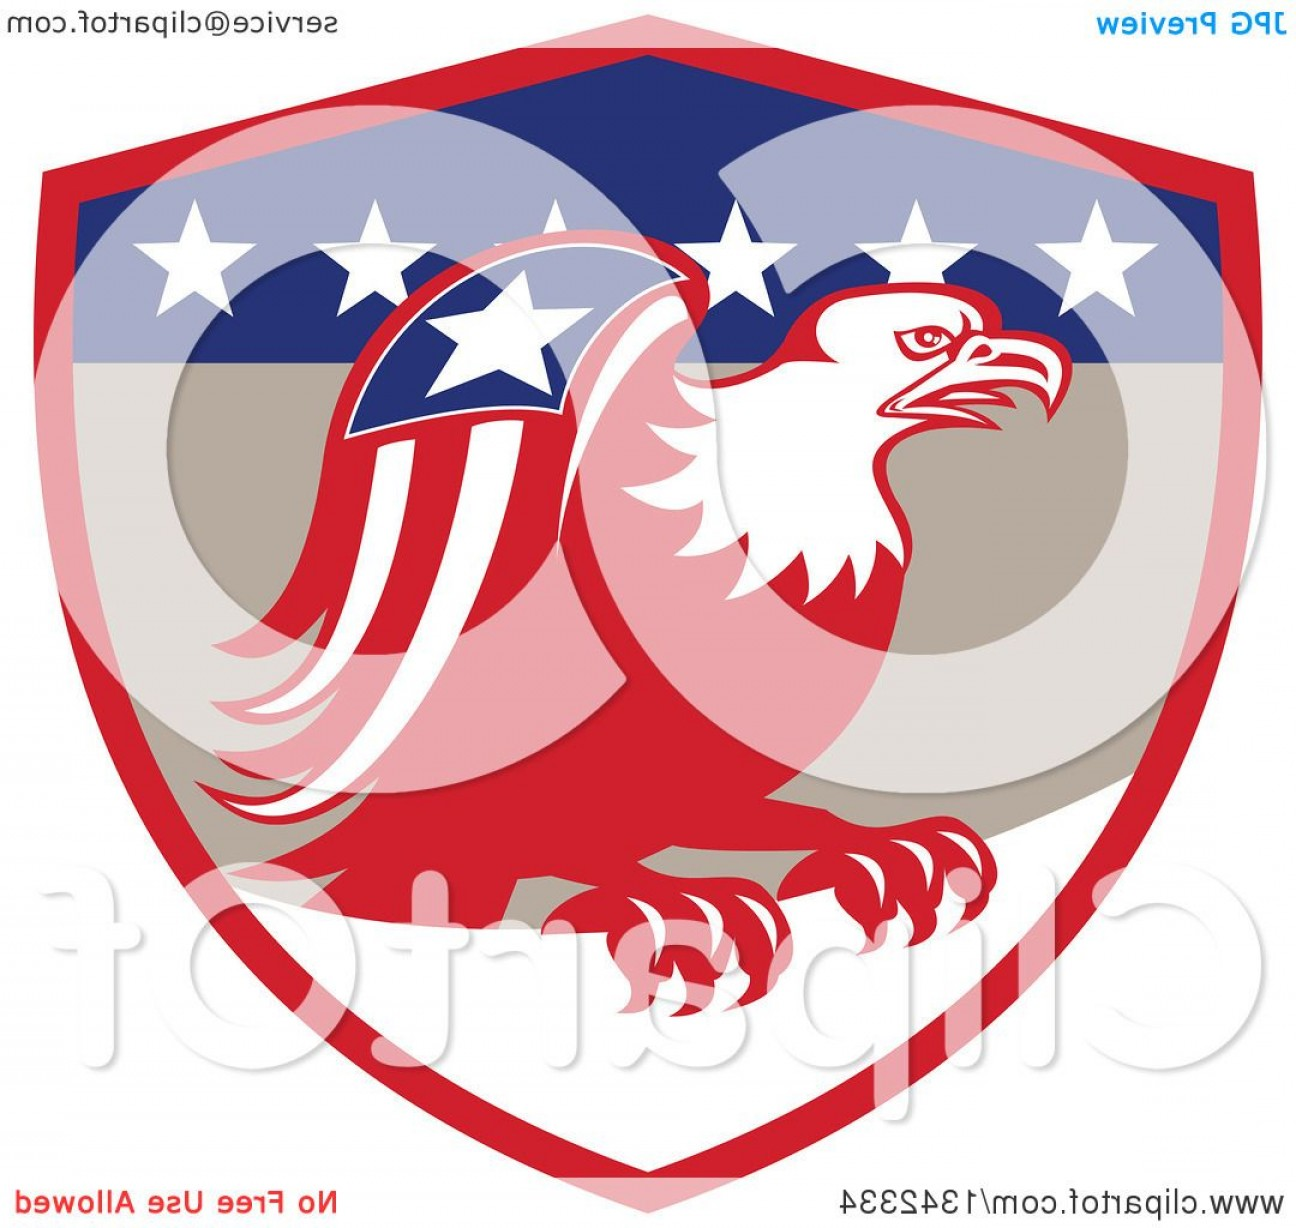 Patriotic Bald Eagle Vector: Retro Cartoon American Bald Eagle With A Patriotic Wing In A Red Tan Blue And White Shield